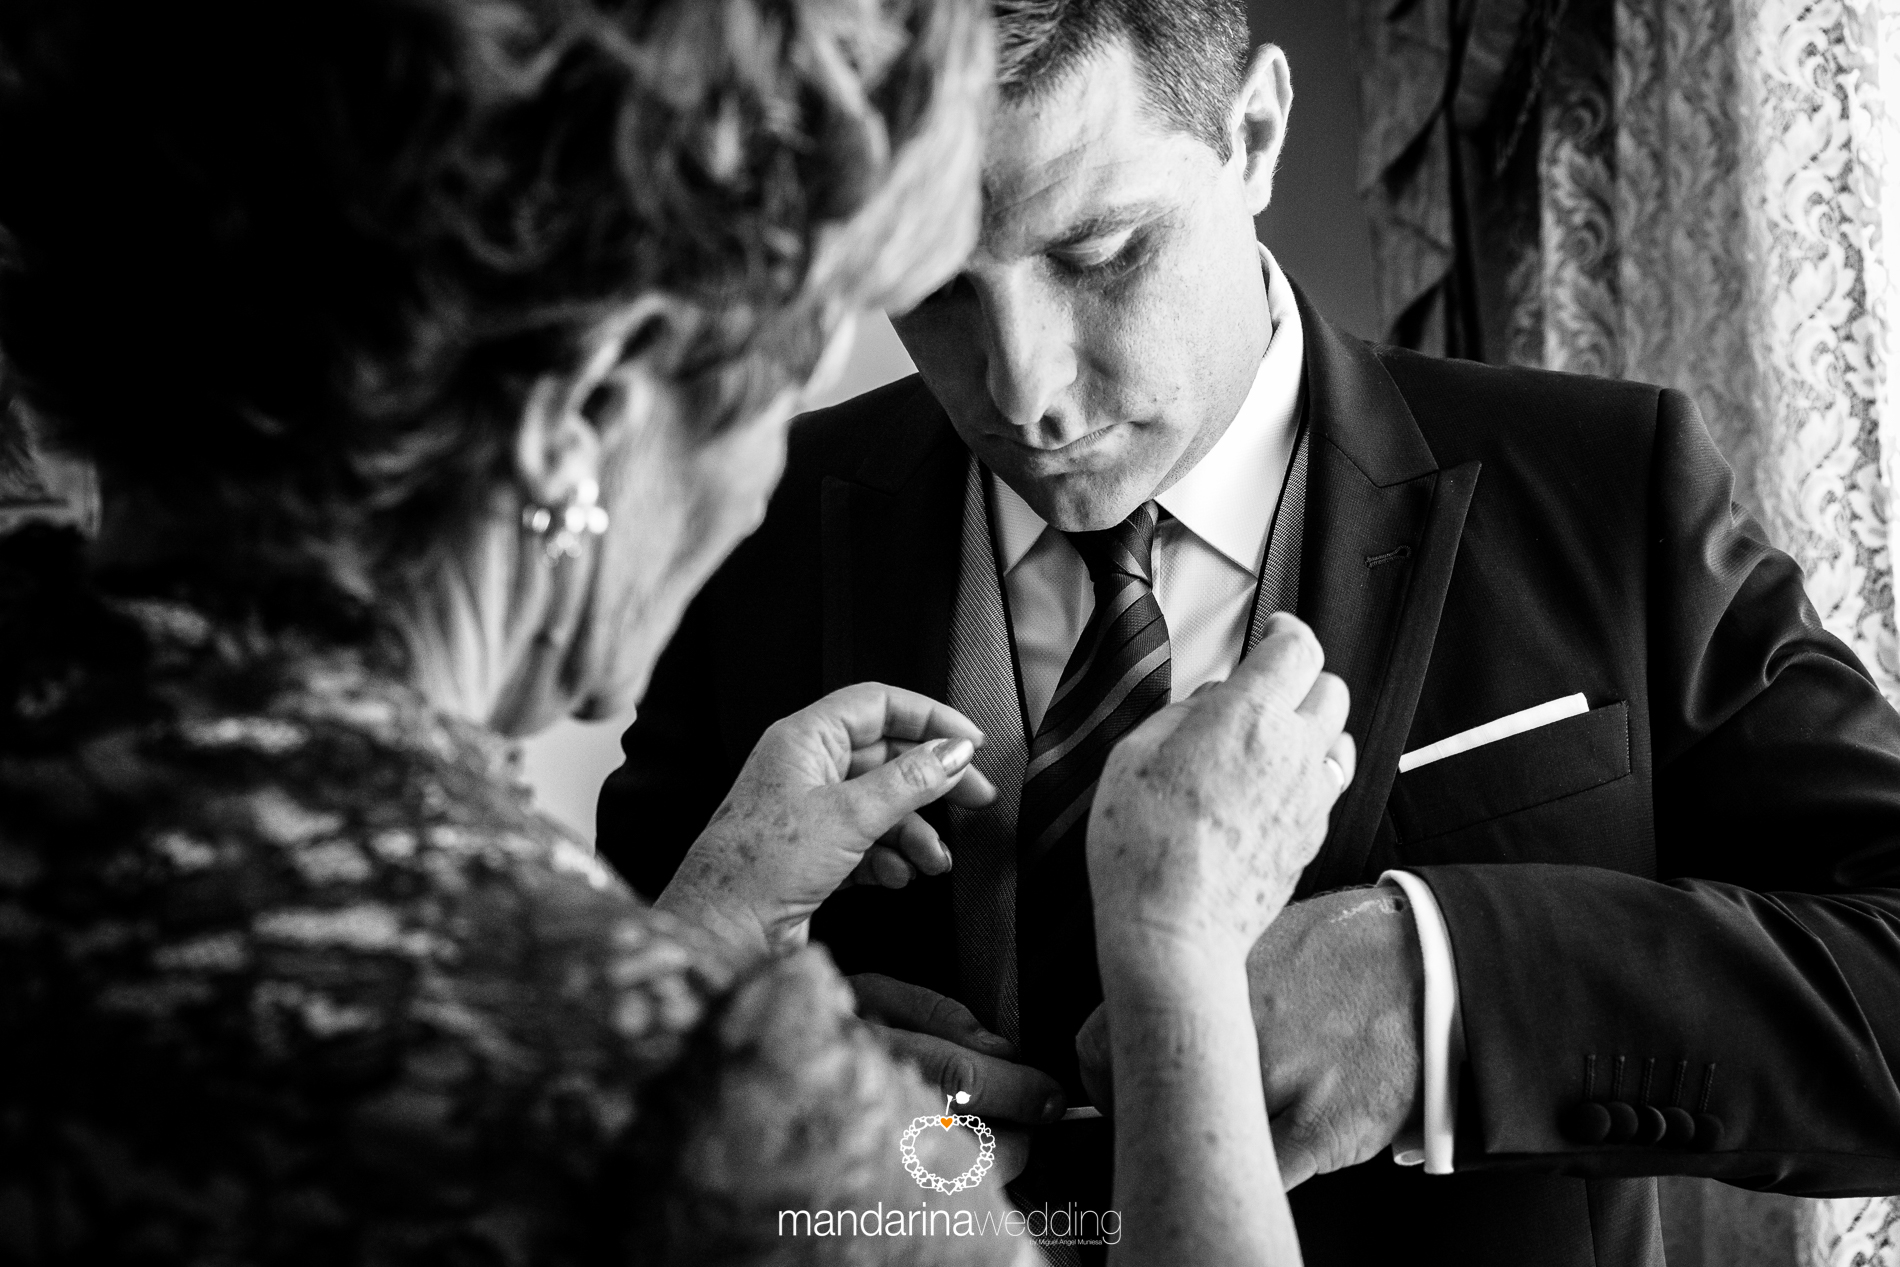 mandarina wedding_11